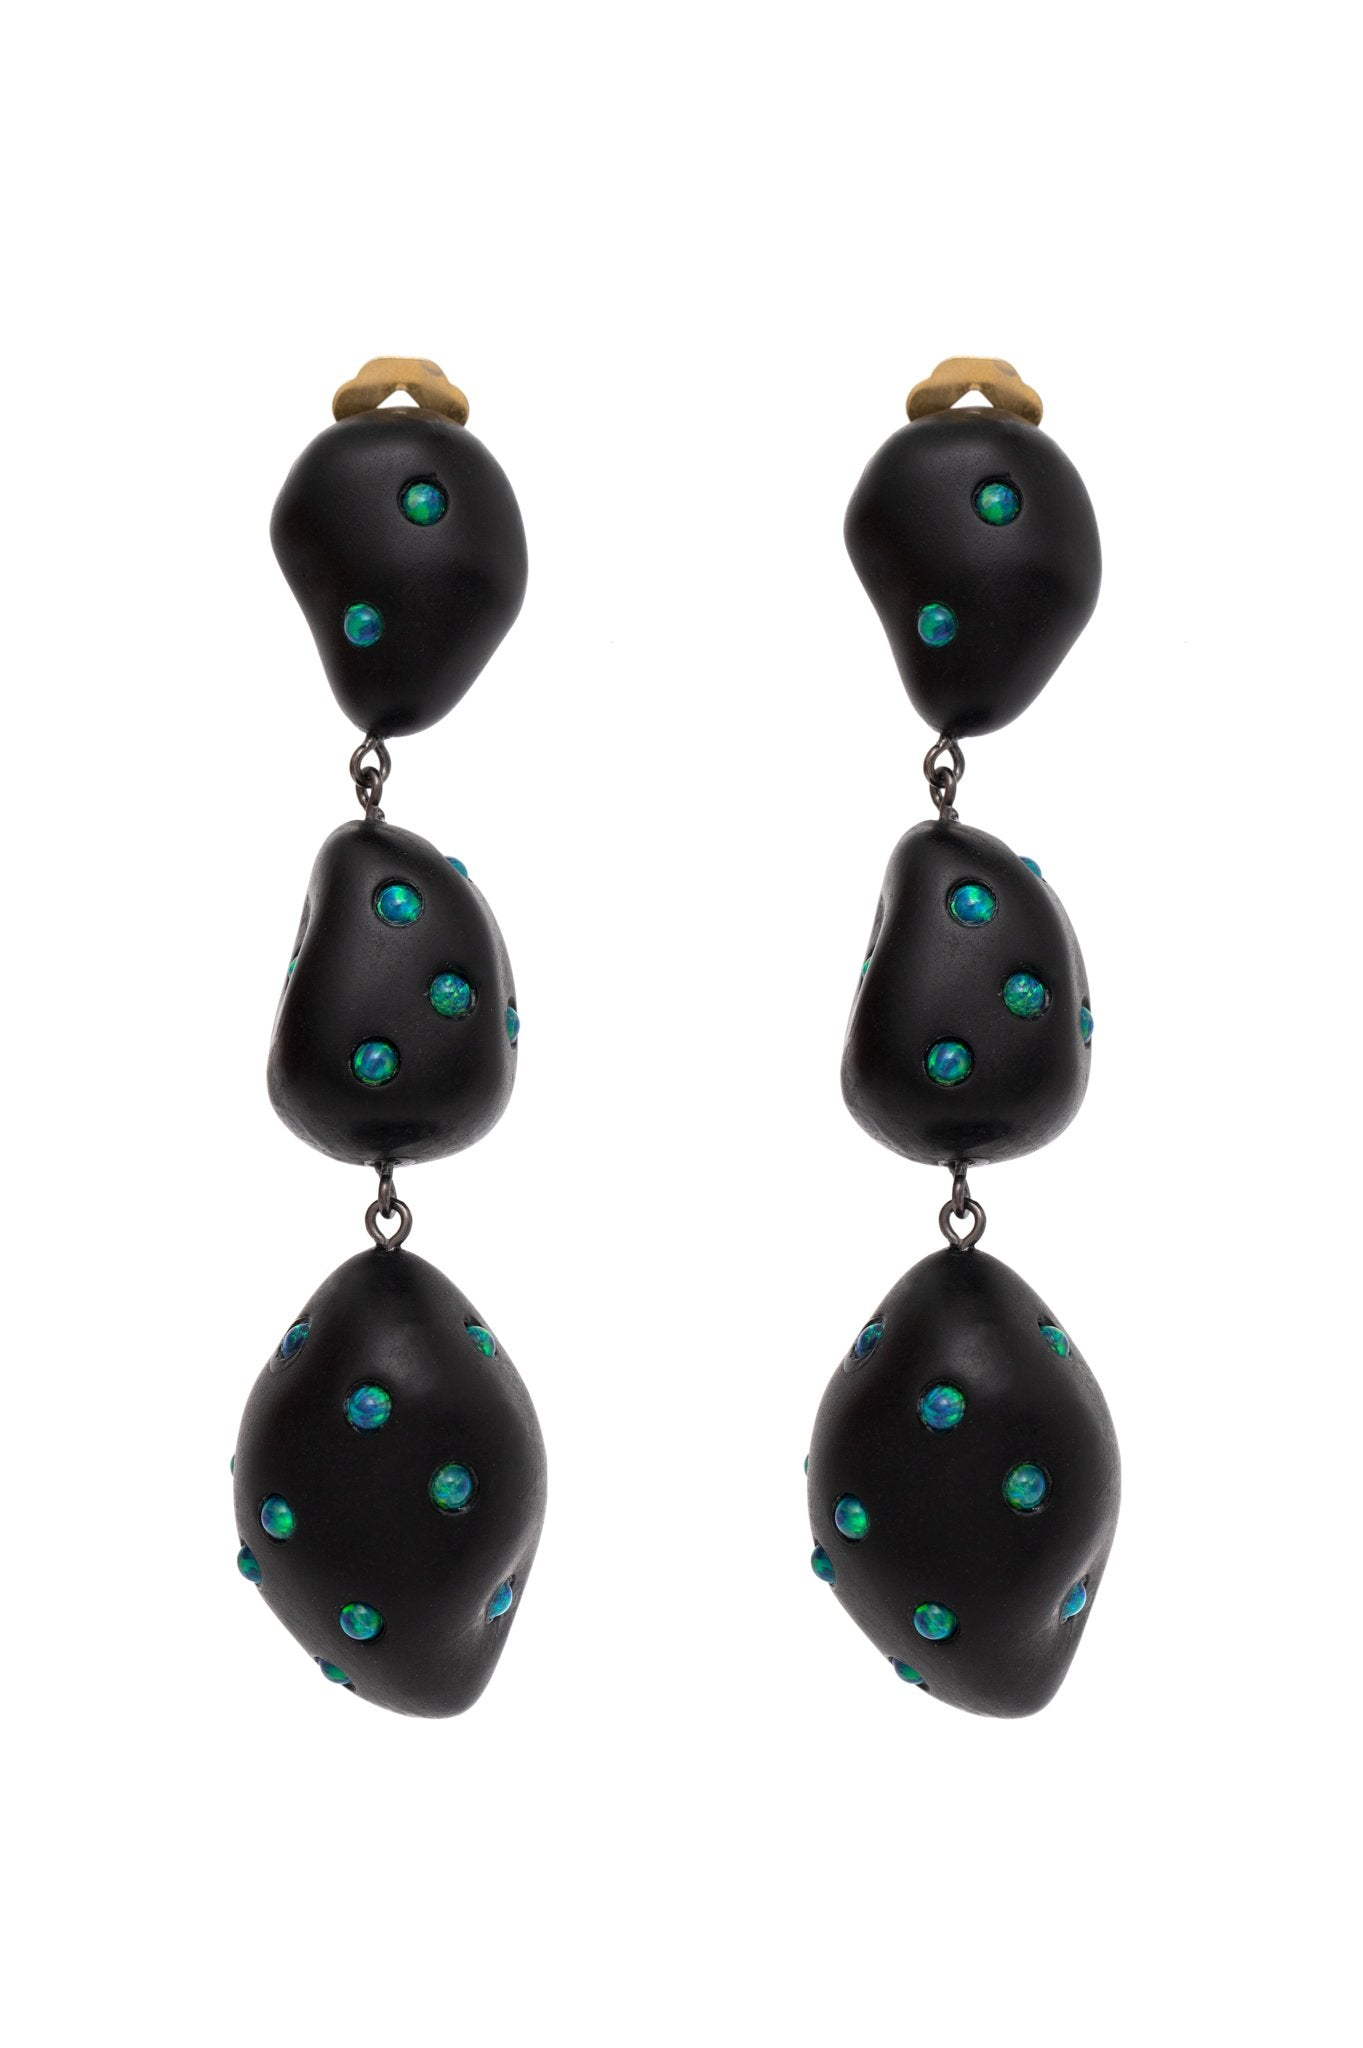 BLACK ARTSY EARRINGS